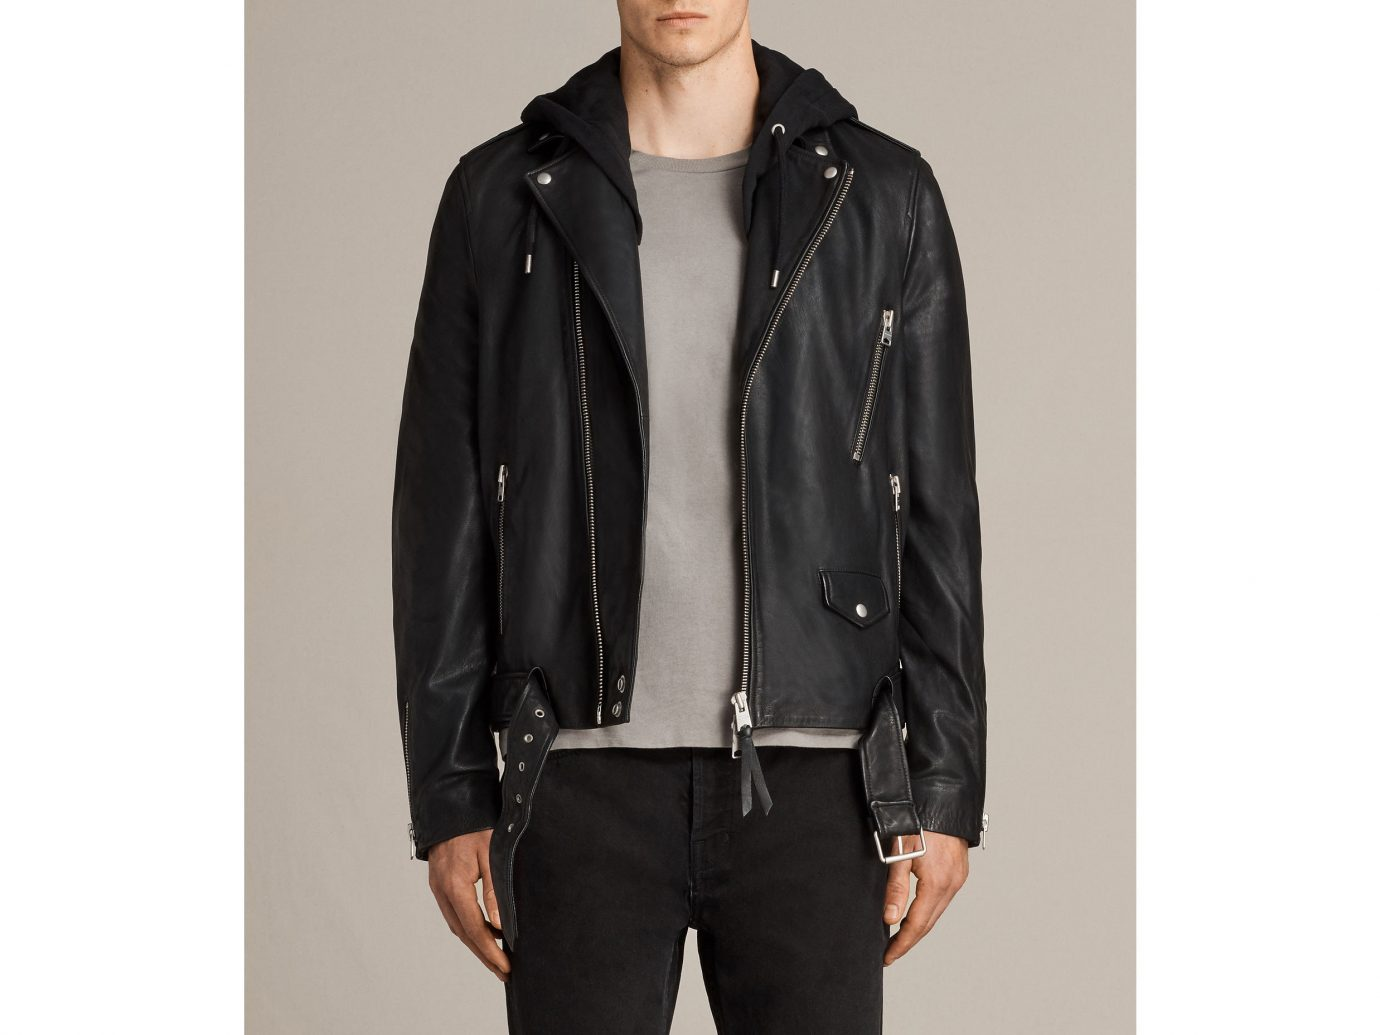 Packing Tips Style + Design Travel Shop person clothing wall posing jacket man standing wearing indoor leather jacket leather suit hood sleeve dressed coat trouser